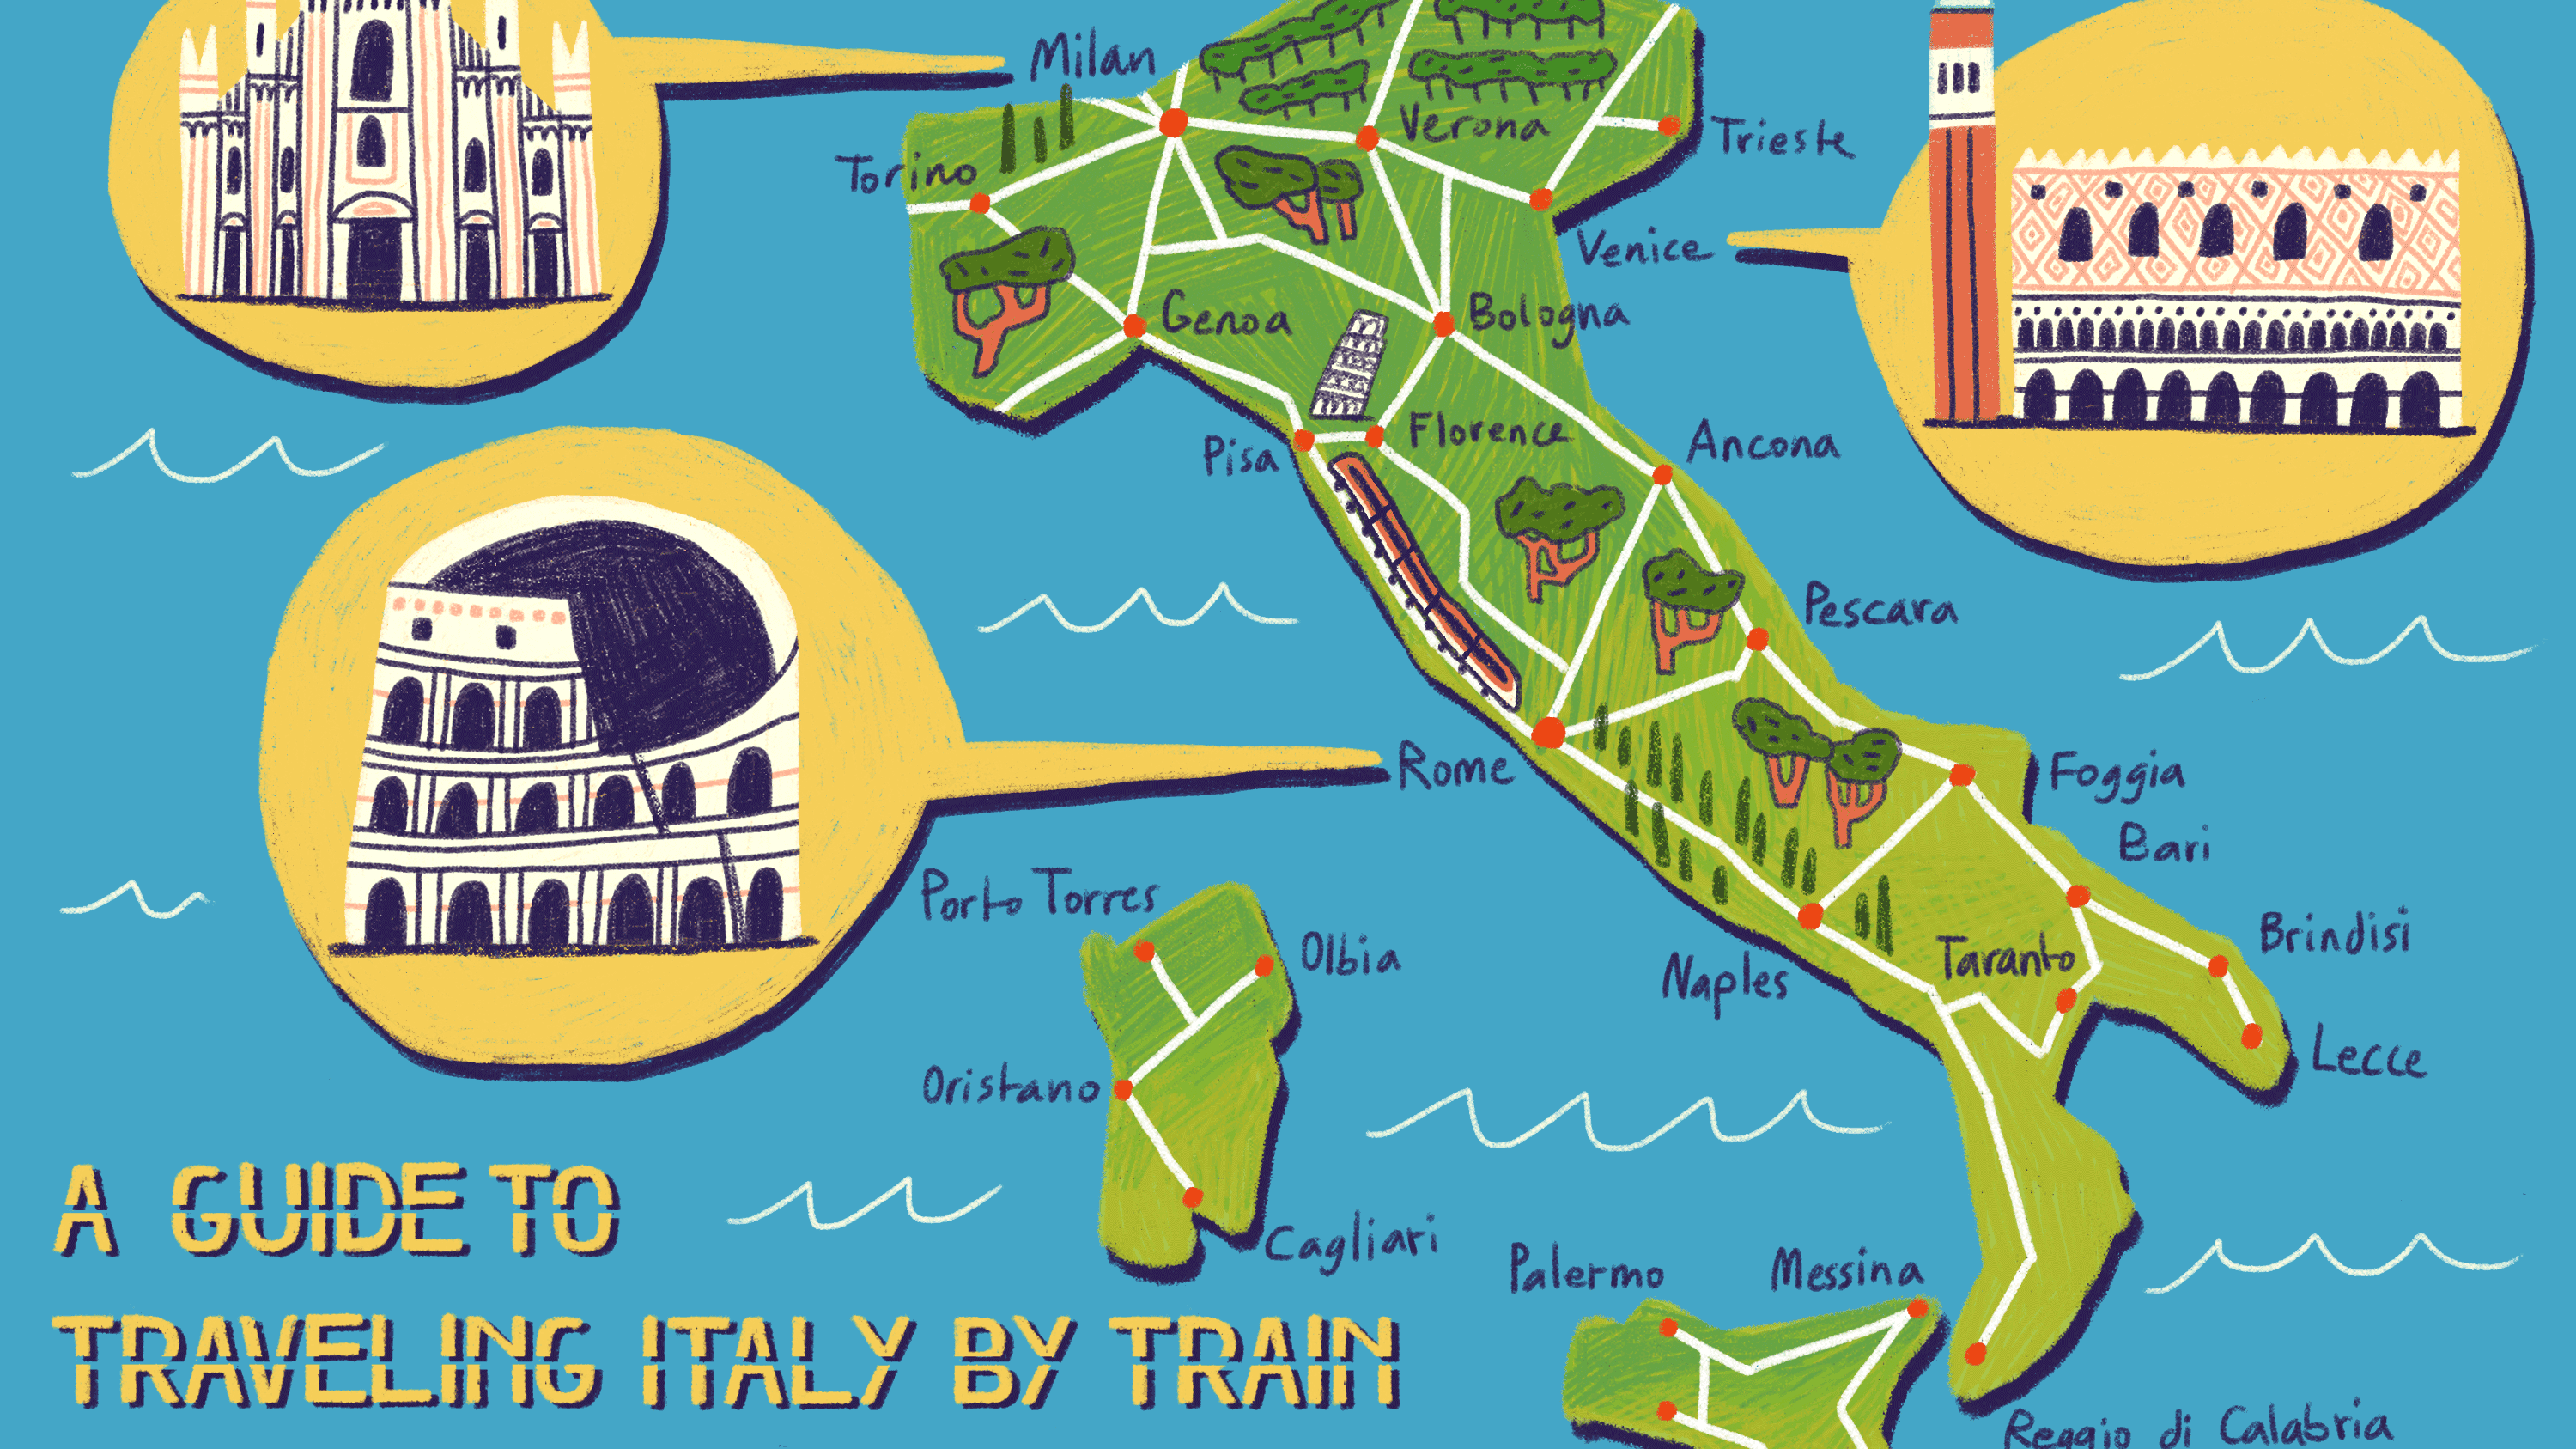 Bologna On Map Of Italy.A Guide To Traveling Italy By Train